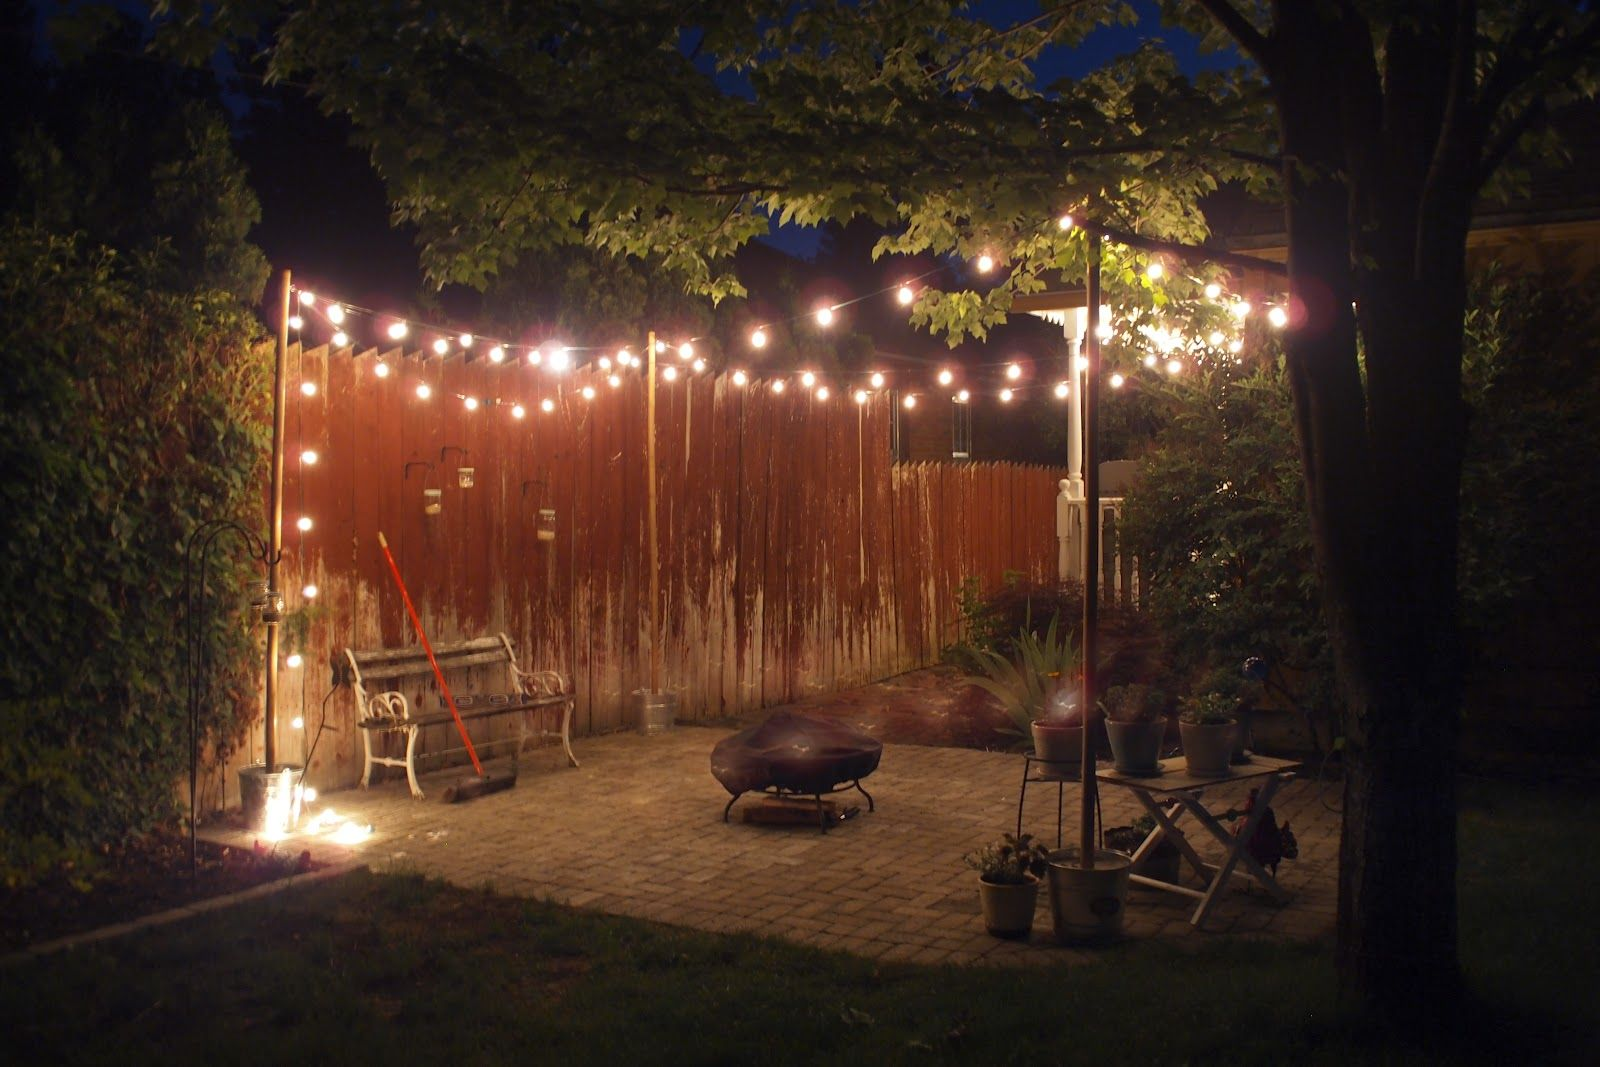 25 Socket Outdoor Patio String Light Set, G50 Clear Globe Bulbs, 28 FT  Black Cord W/ E17 Base